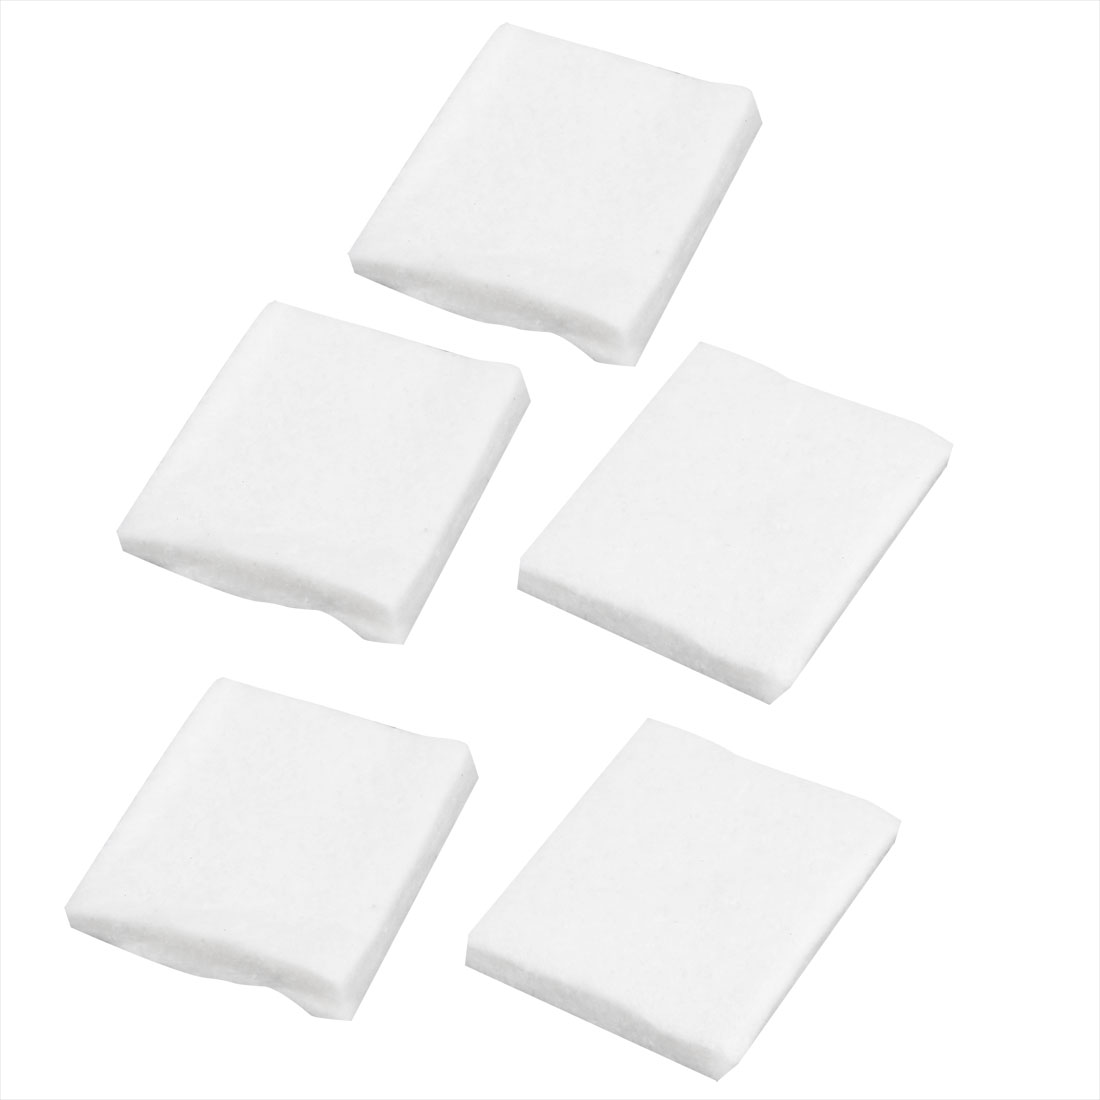 5 Pcs 45mm x 37mm x 6mm Filter Sponge Pad Mat White for Aquarium